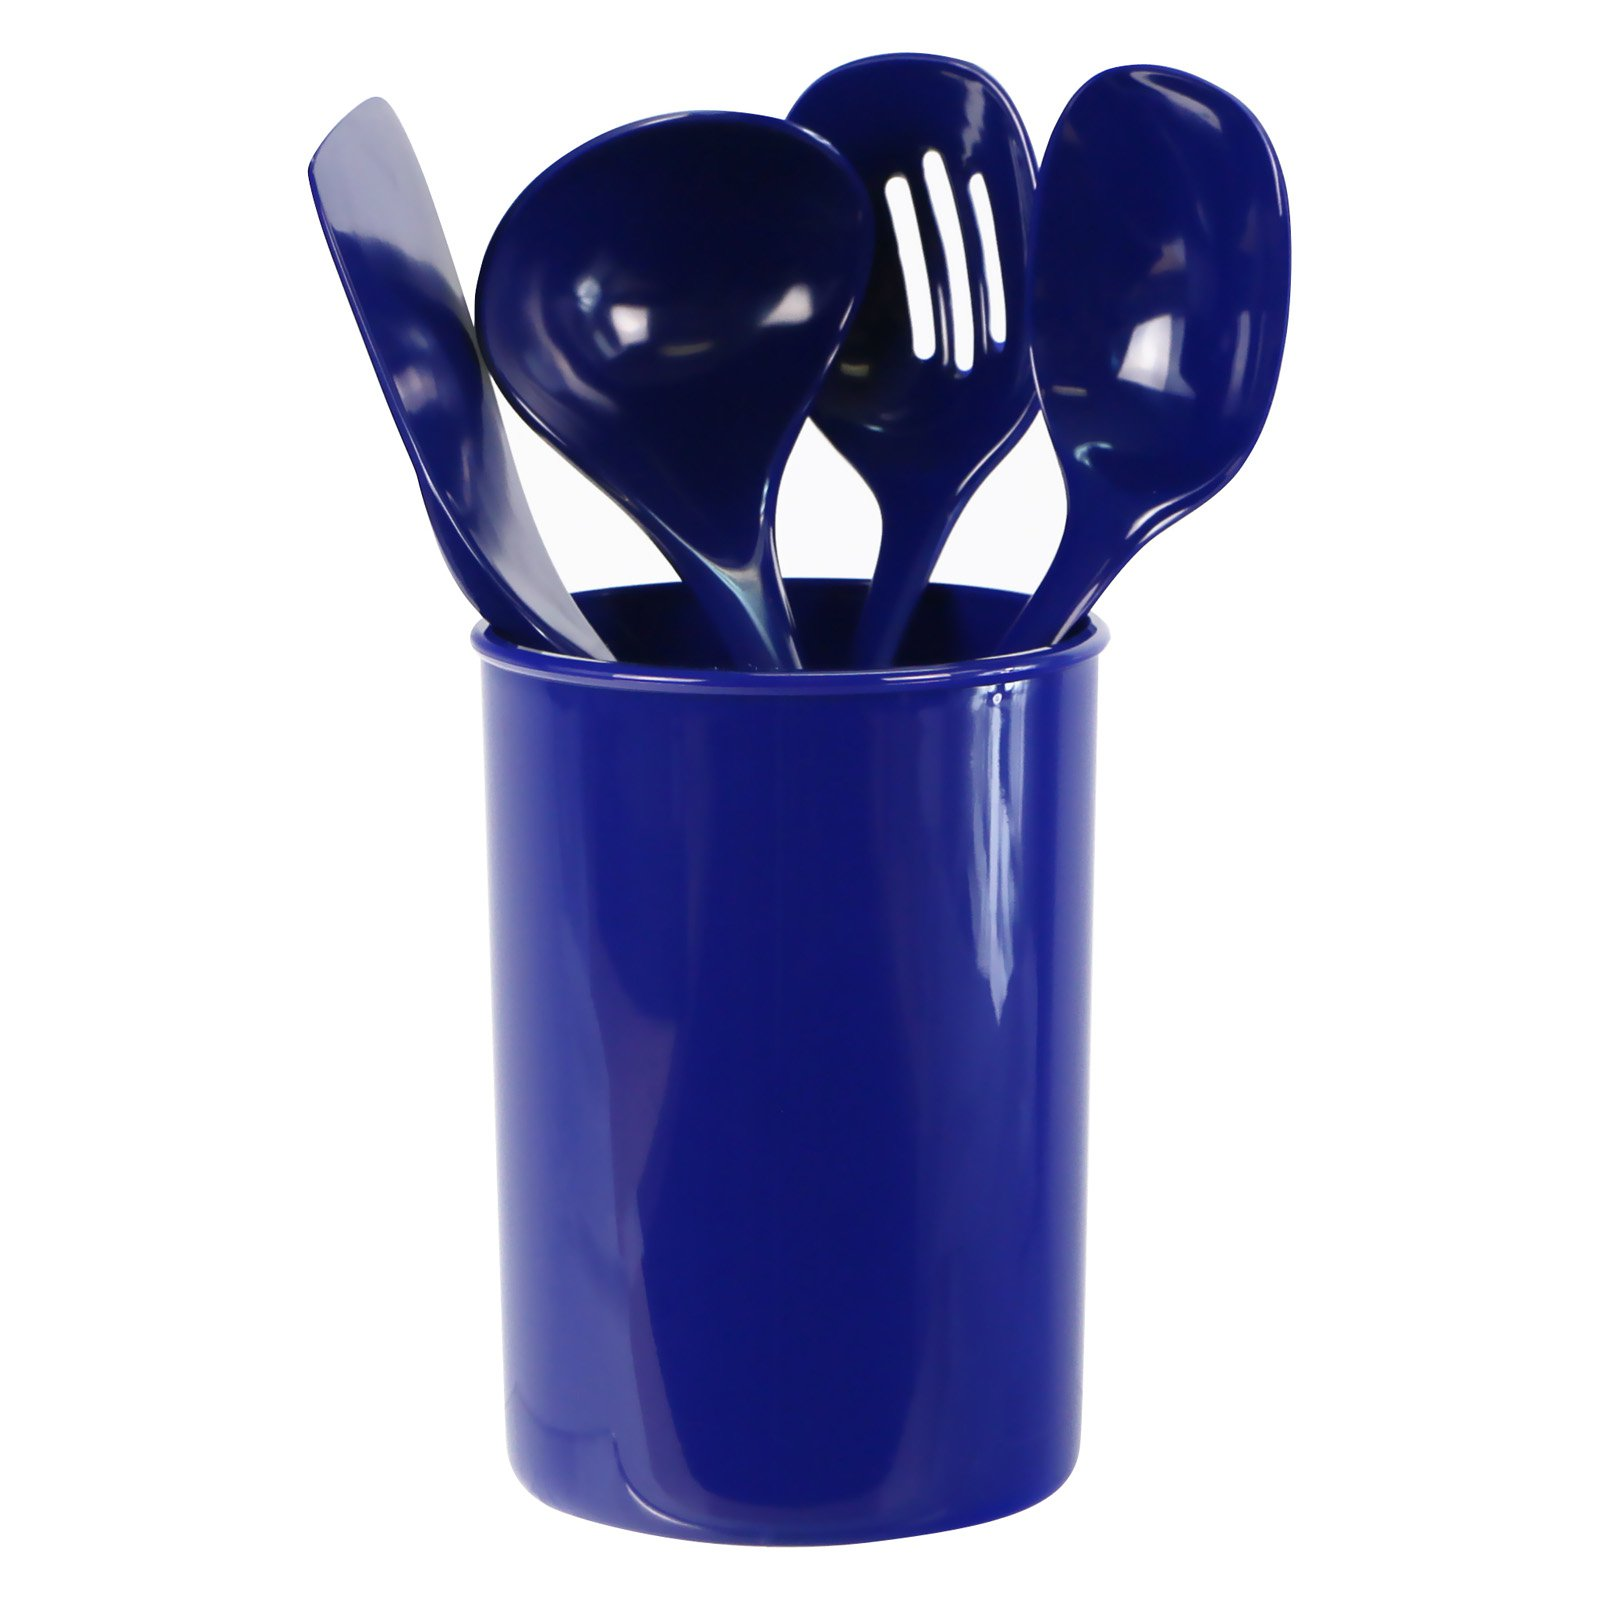 Calypso Basics, 5pc Utensil Holder Set, Indigo